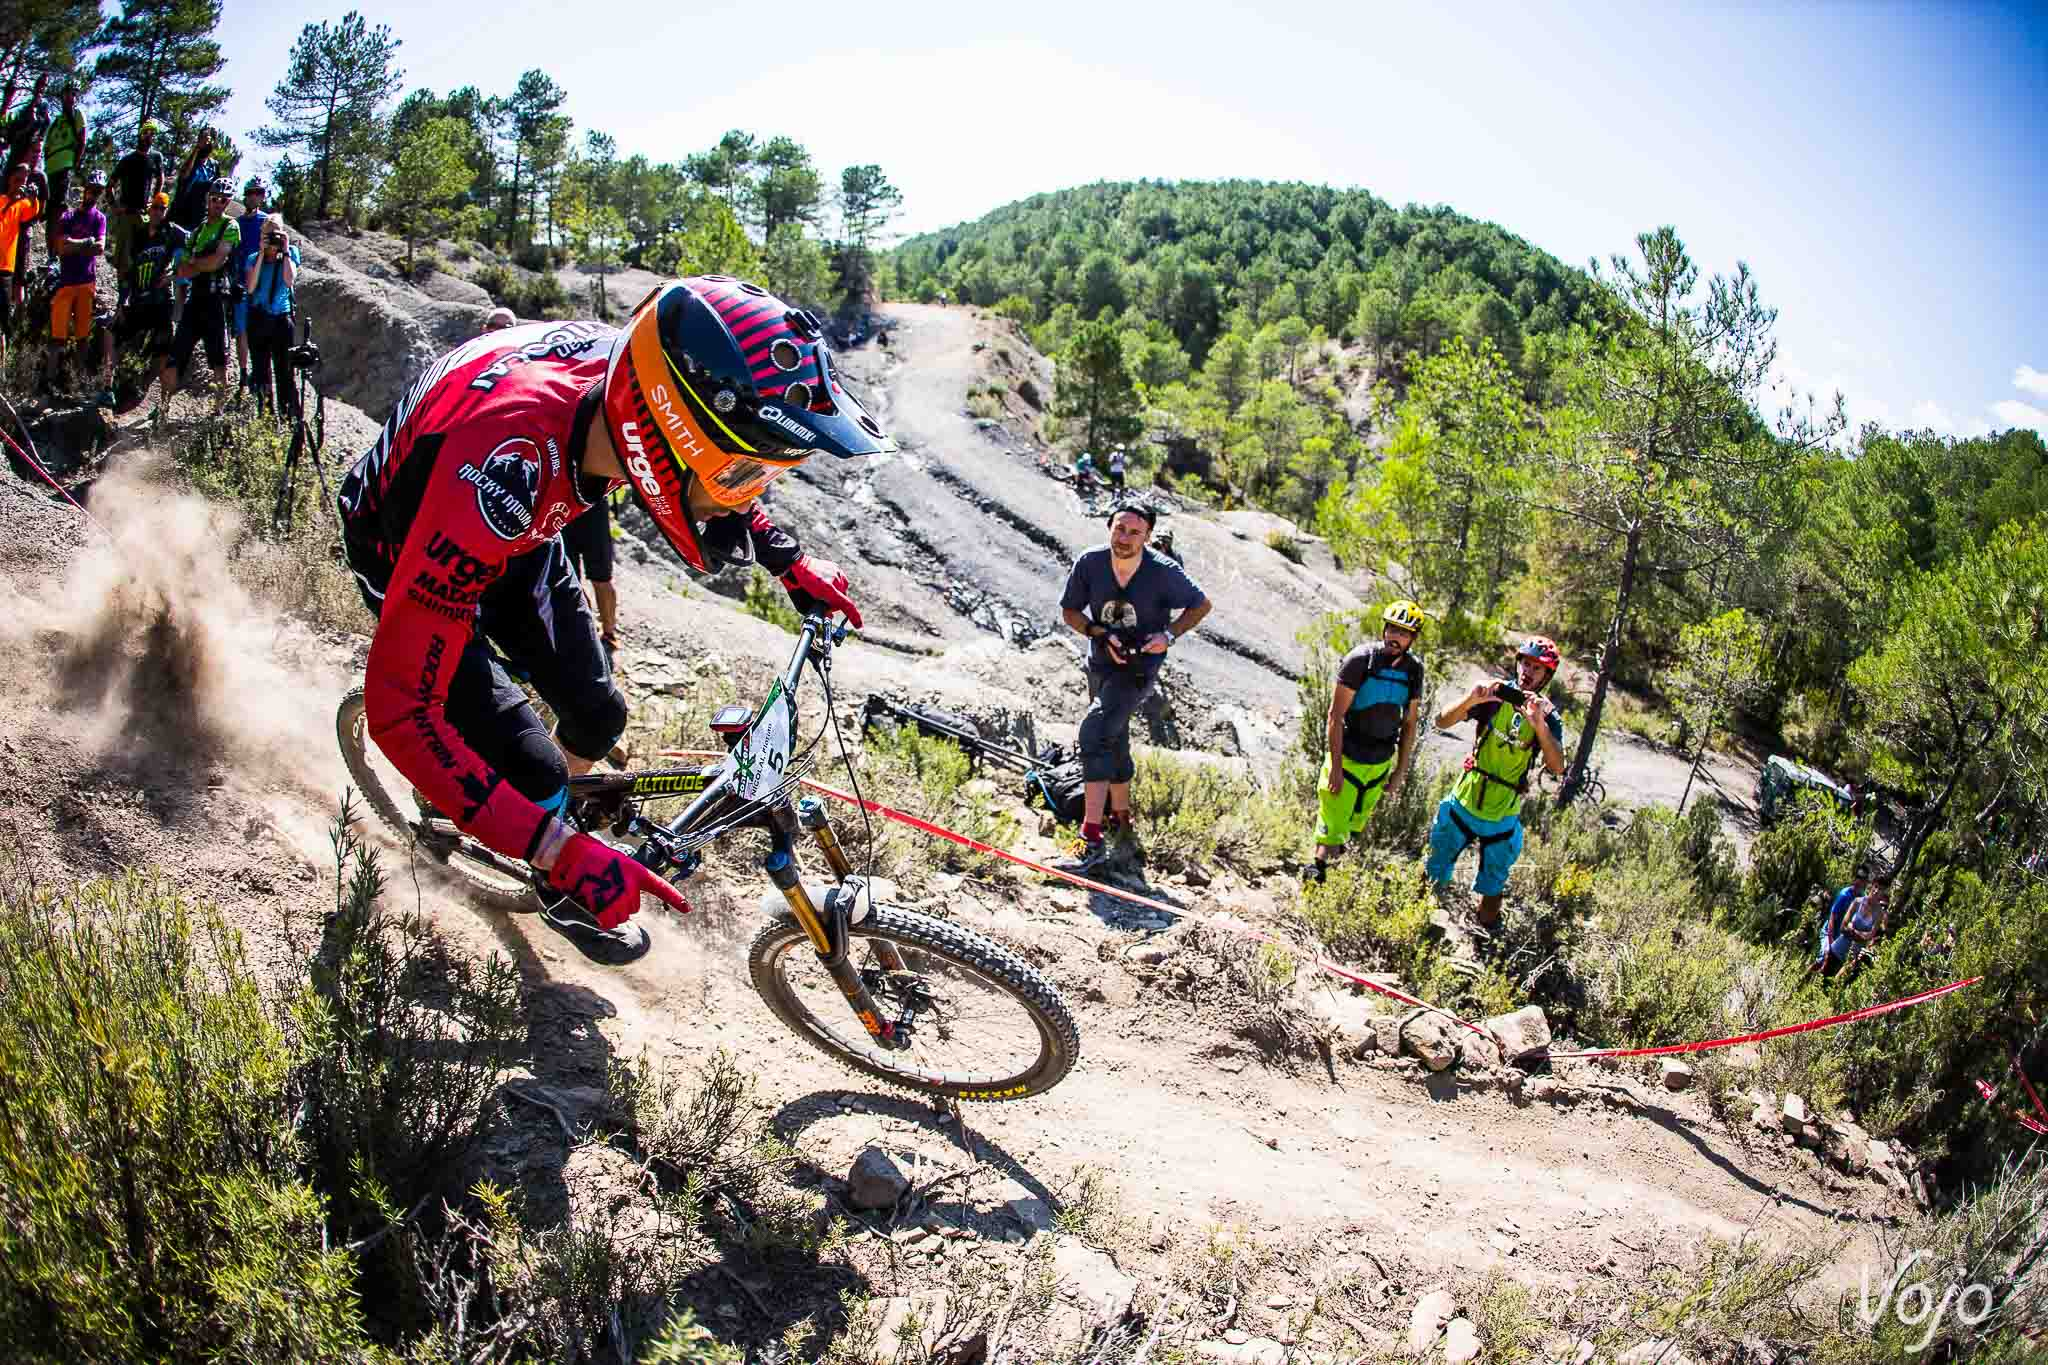 Enduro_World_Series_7_Spain_Ainsa_Zona_Zero_2015_Copyright_VojoMag-17